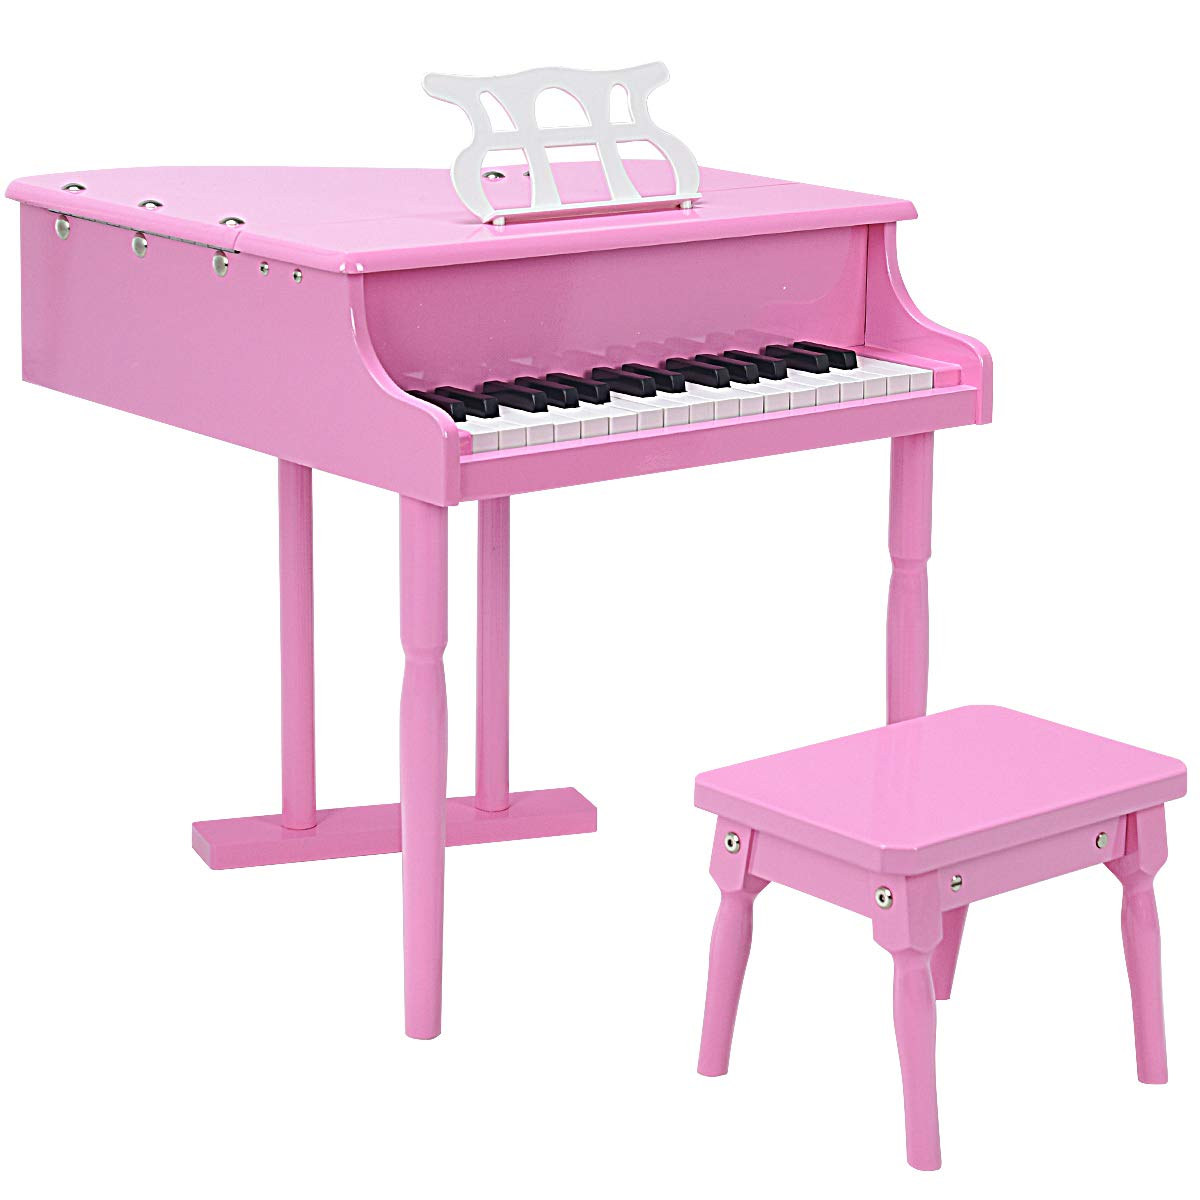 Goplus Classical Kids Piano, 30 Keys Wood Toy Grand Piano w/ Bench, Mini Musical Toy for Child (Pink)